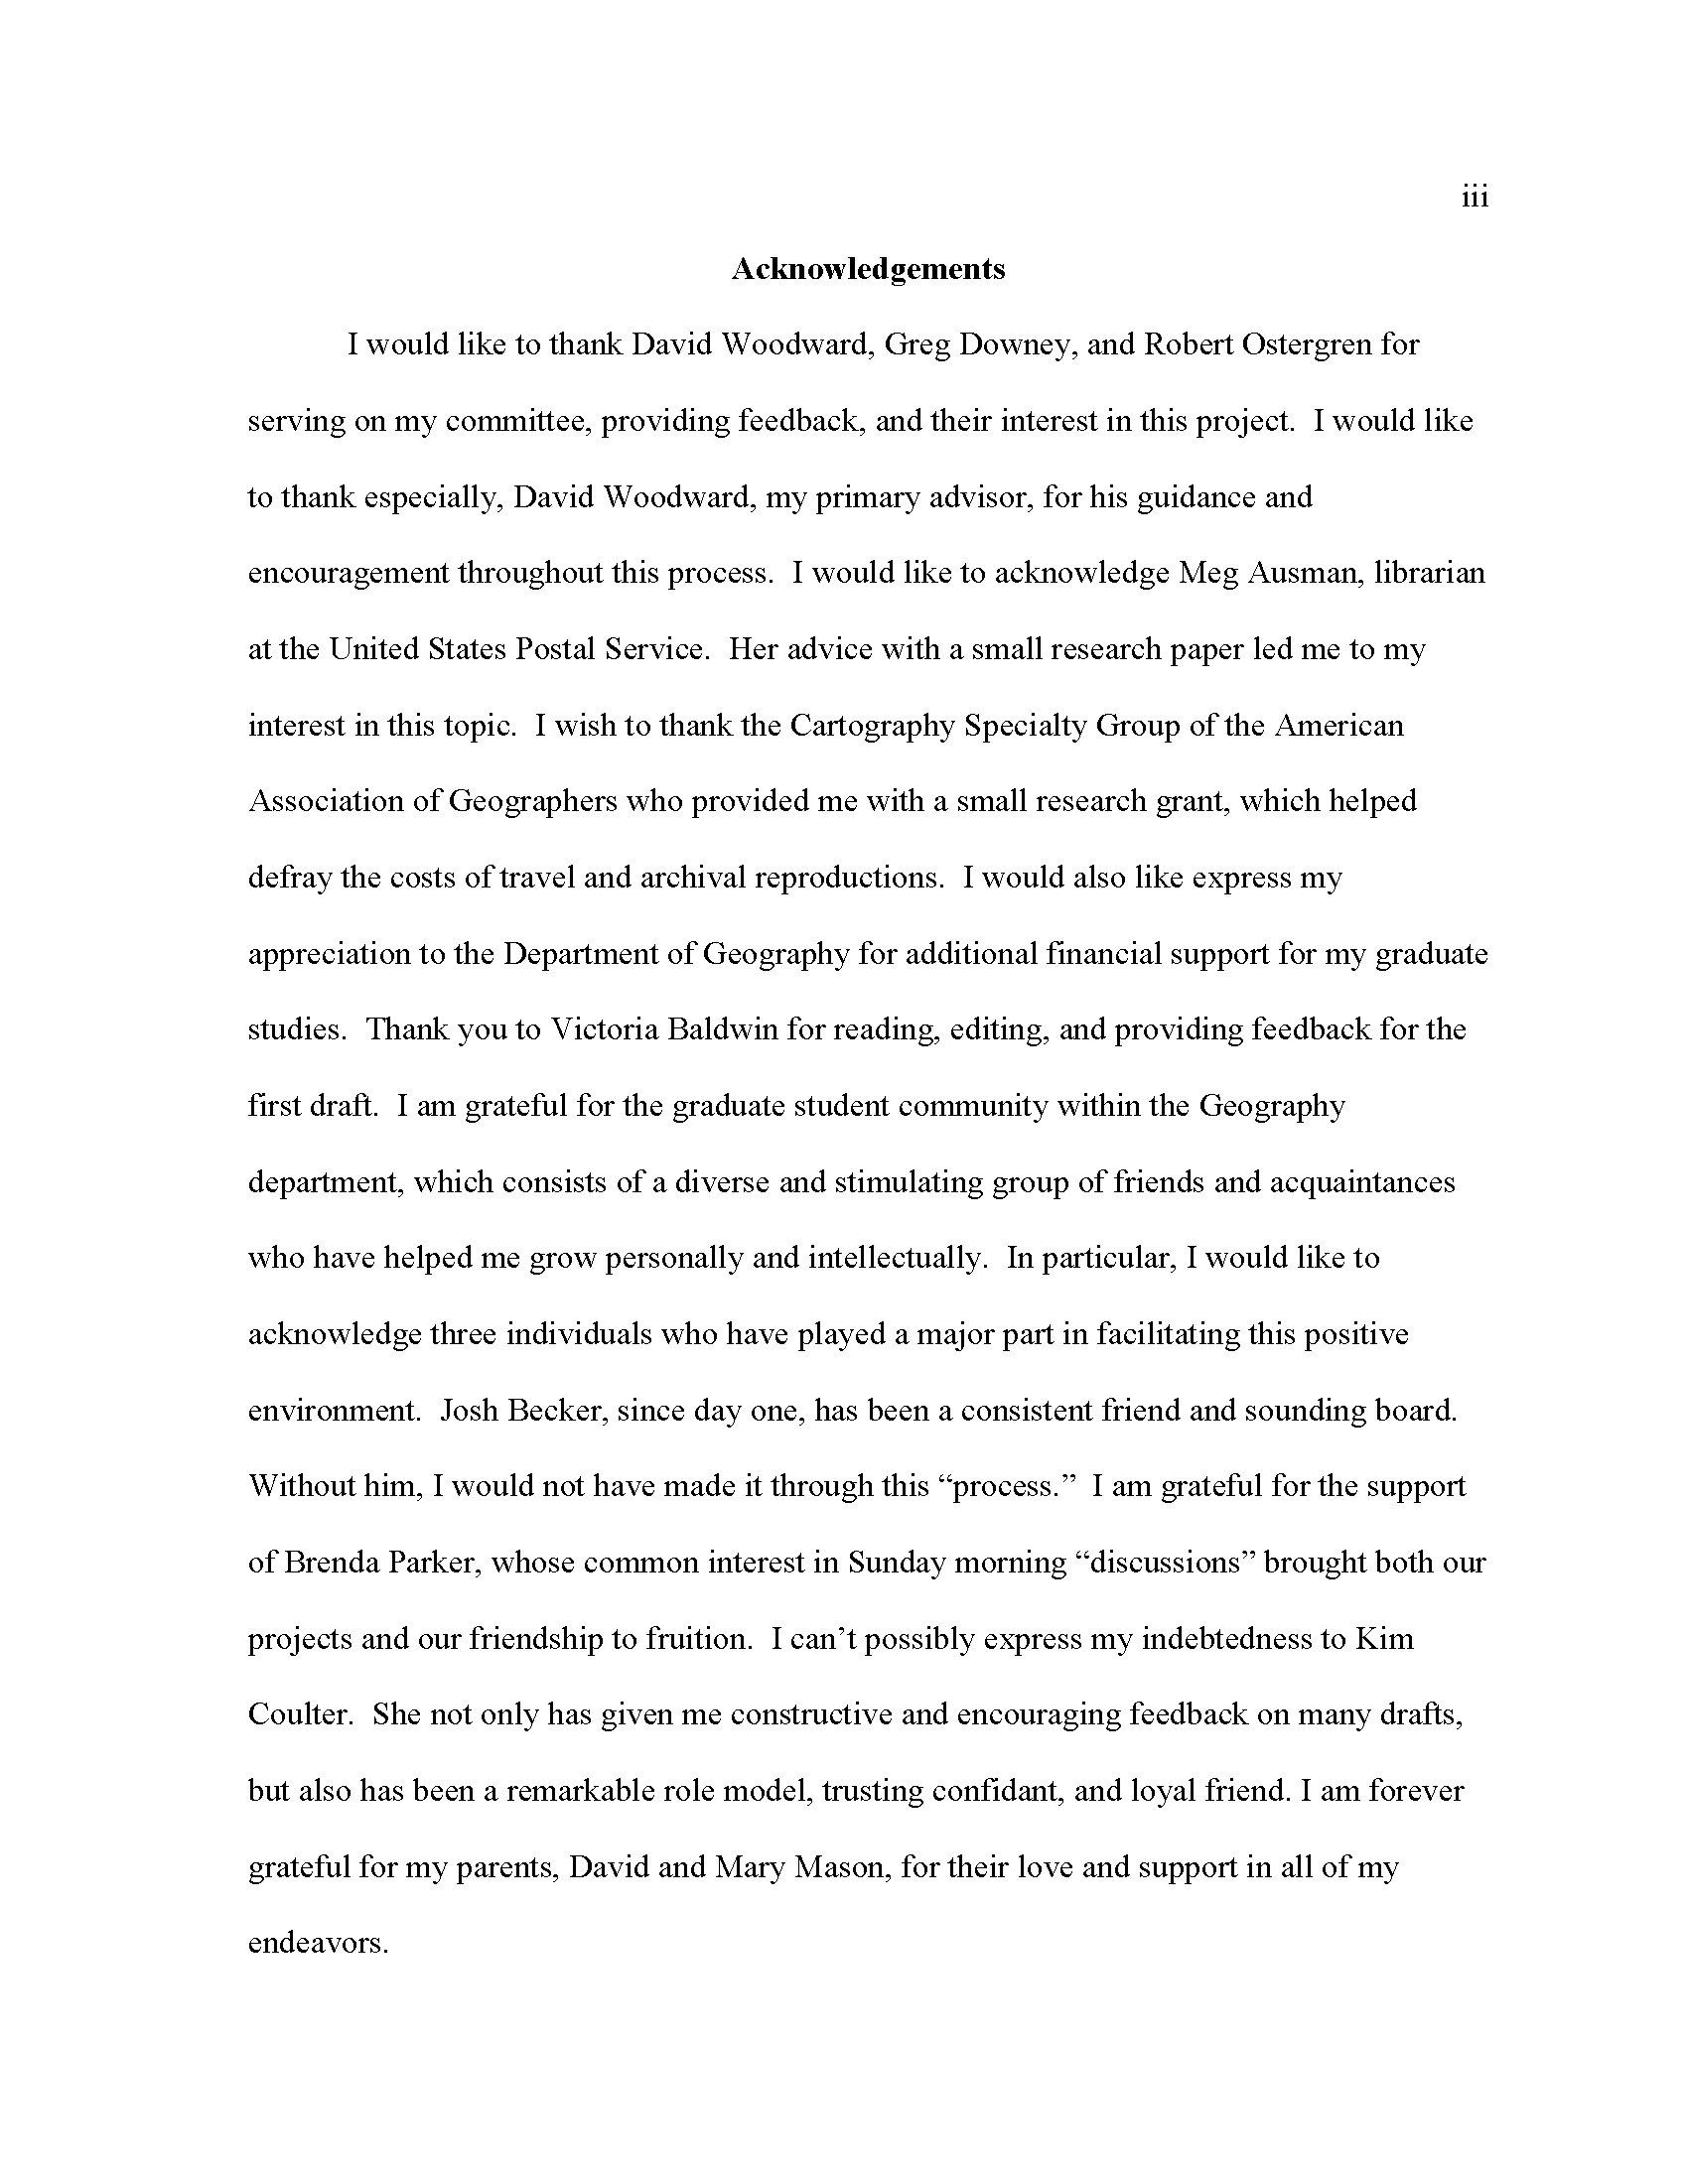 Thesis Final_Page_004.png